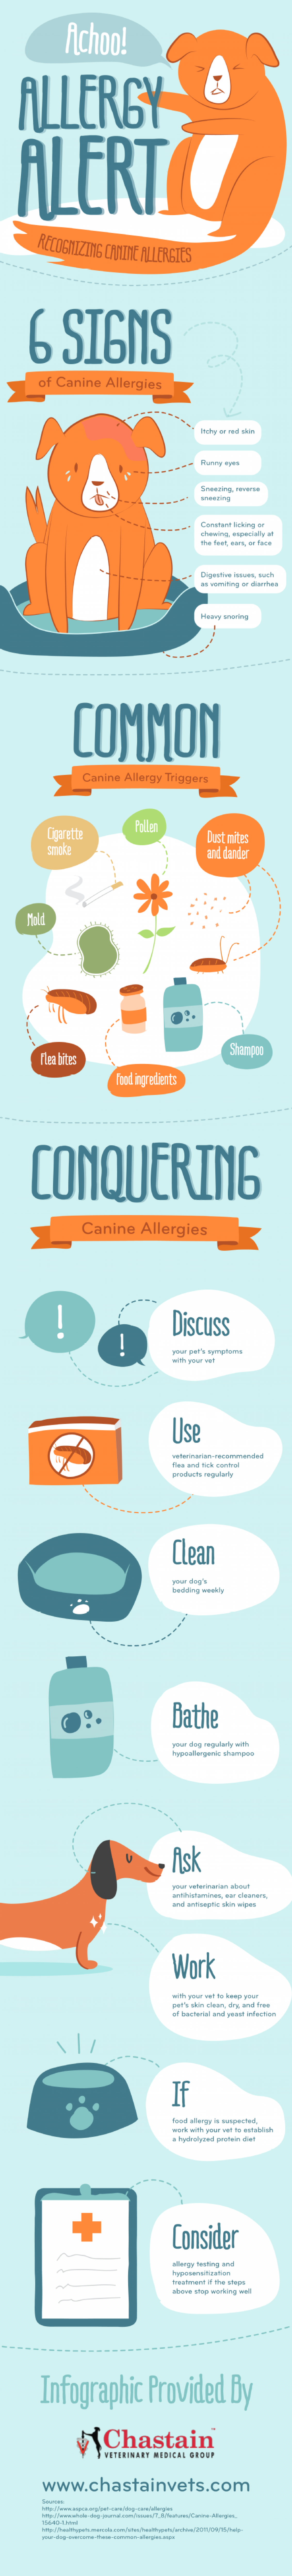 Allergy Alert: Recognizing Canine Allergies Infographic